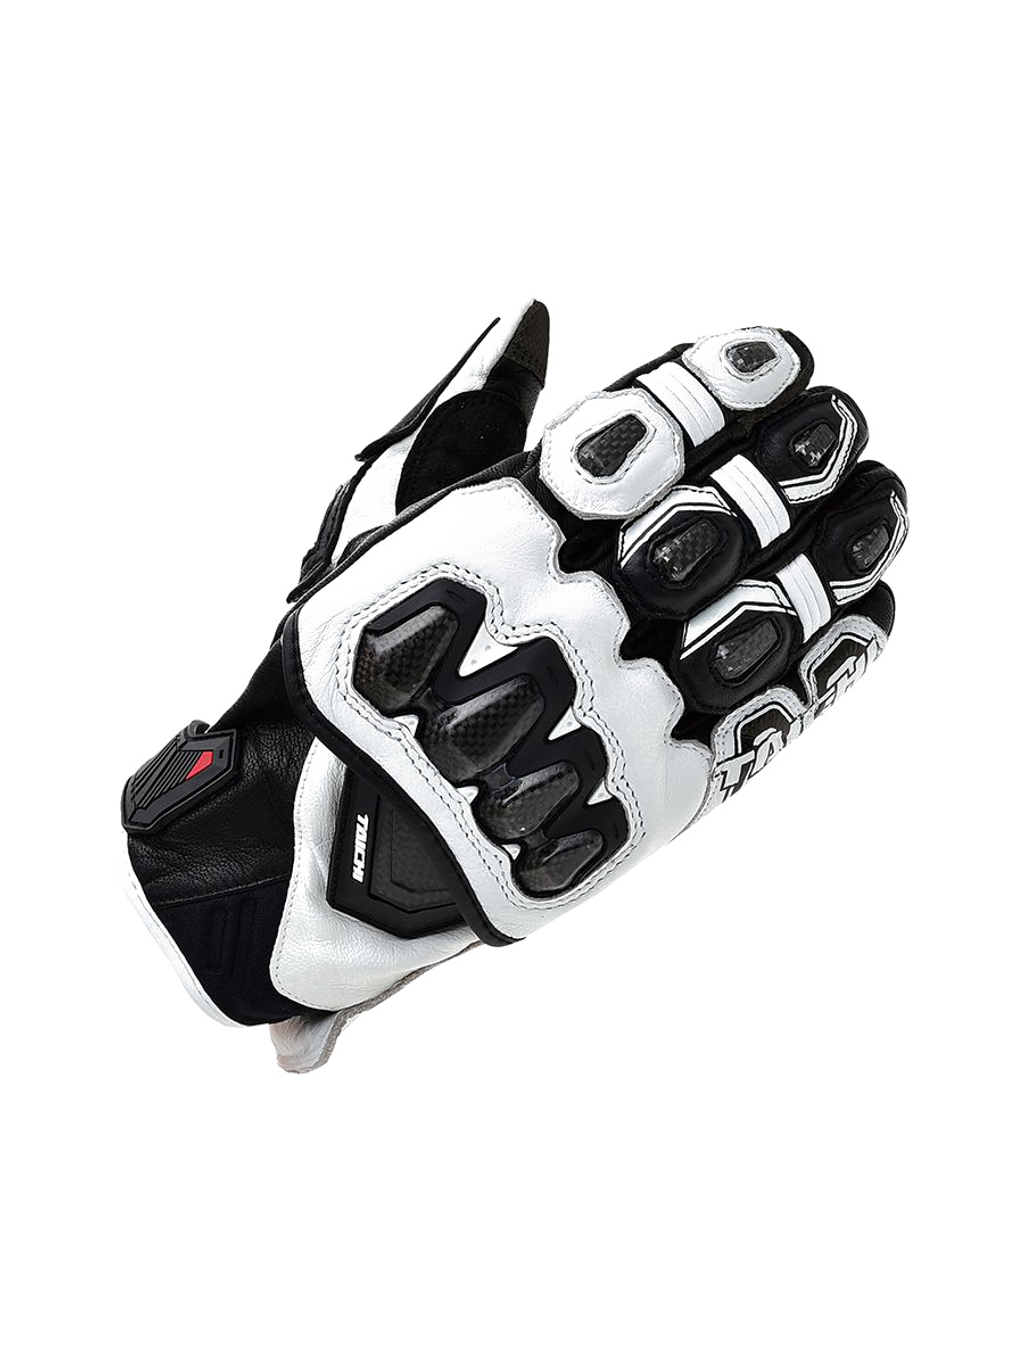 03 RS TAICHI RST422 HIGH PROTECTION LEATHER GLOVE white black (1).png